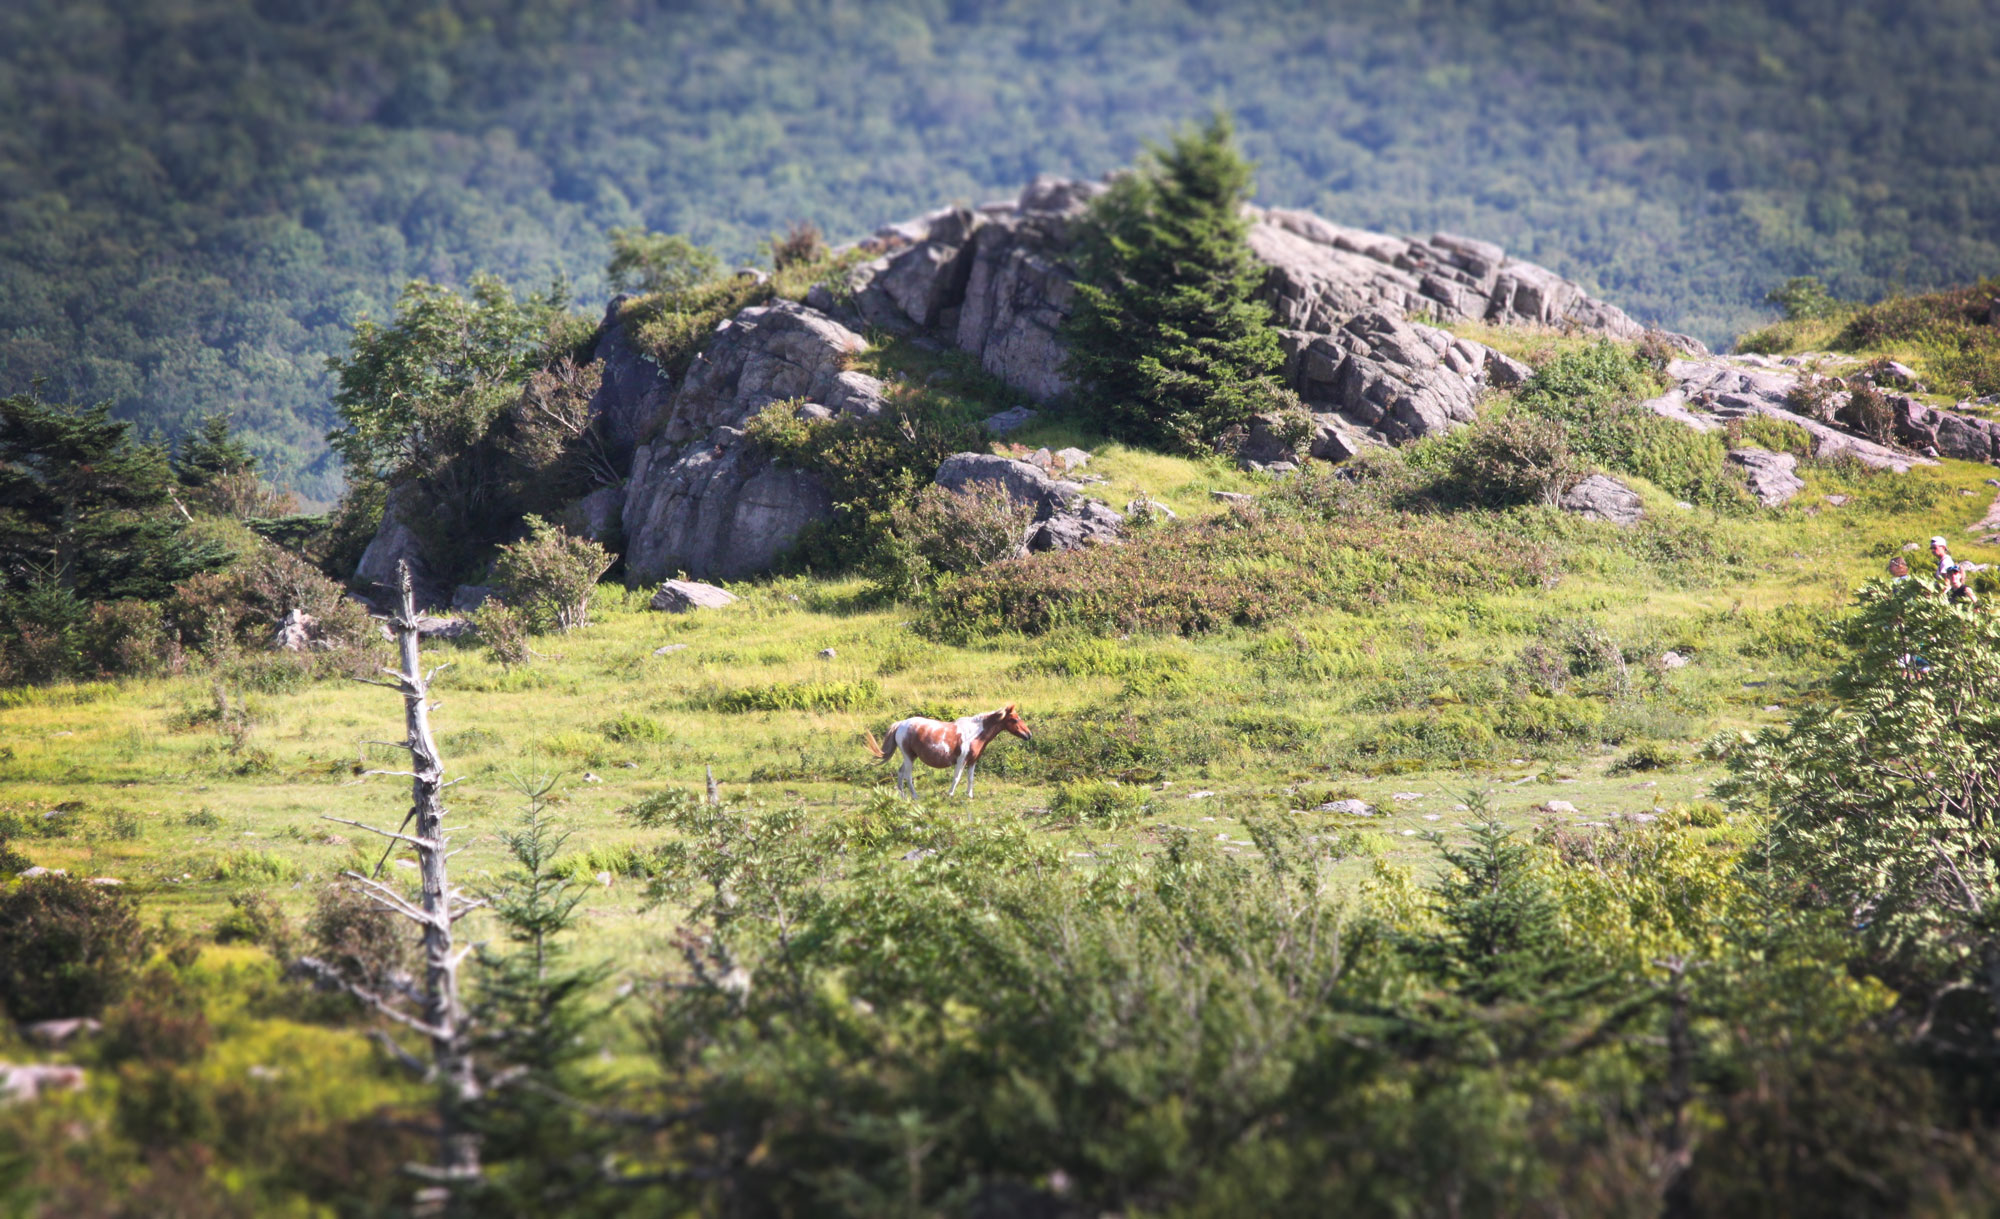 Wild pony at a knob in Grayson Highlands State Park, Virginia